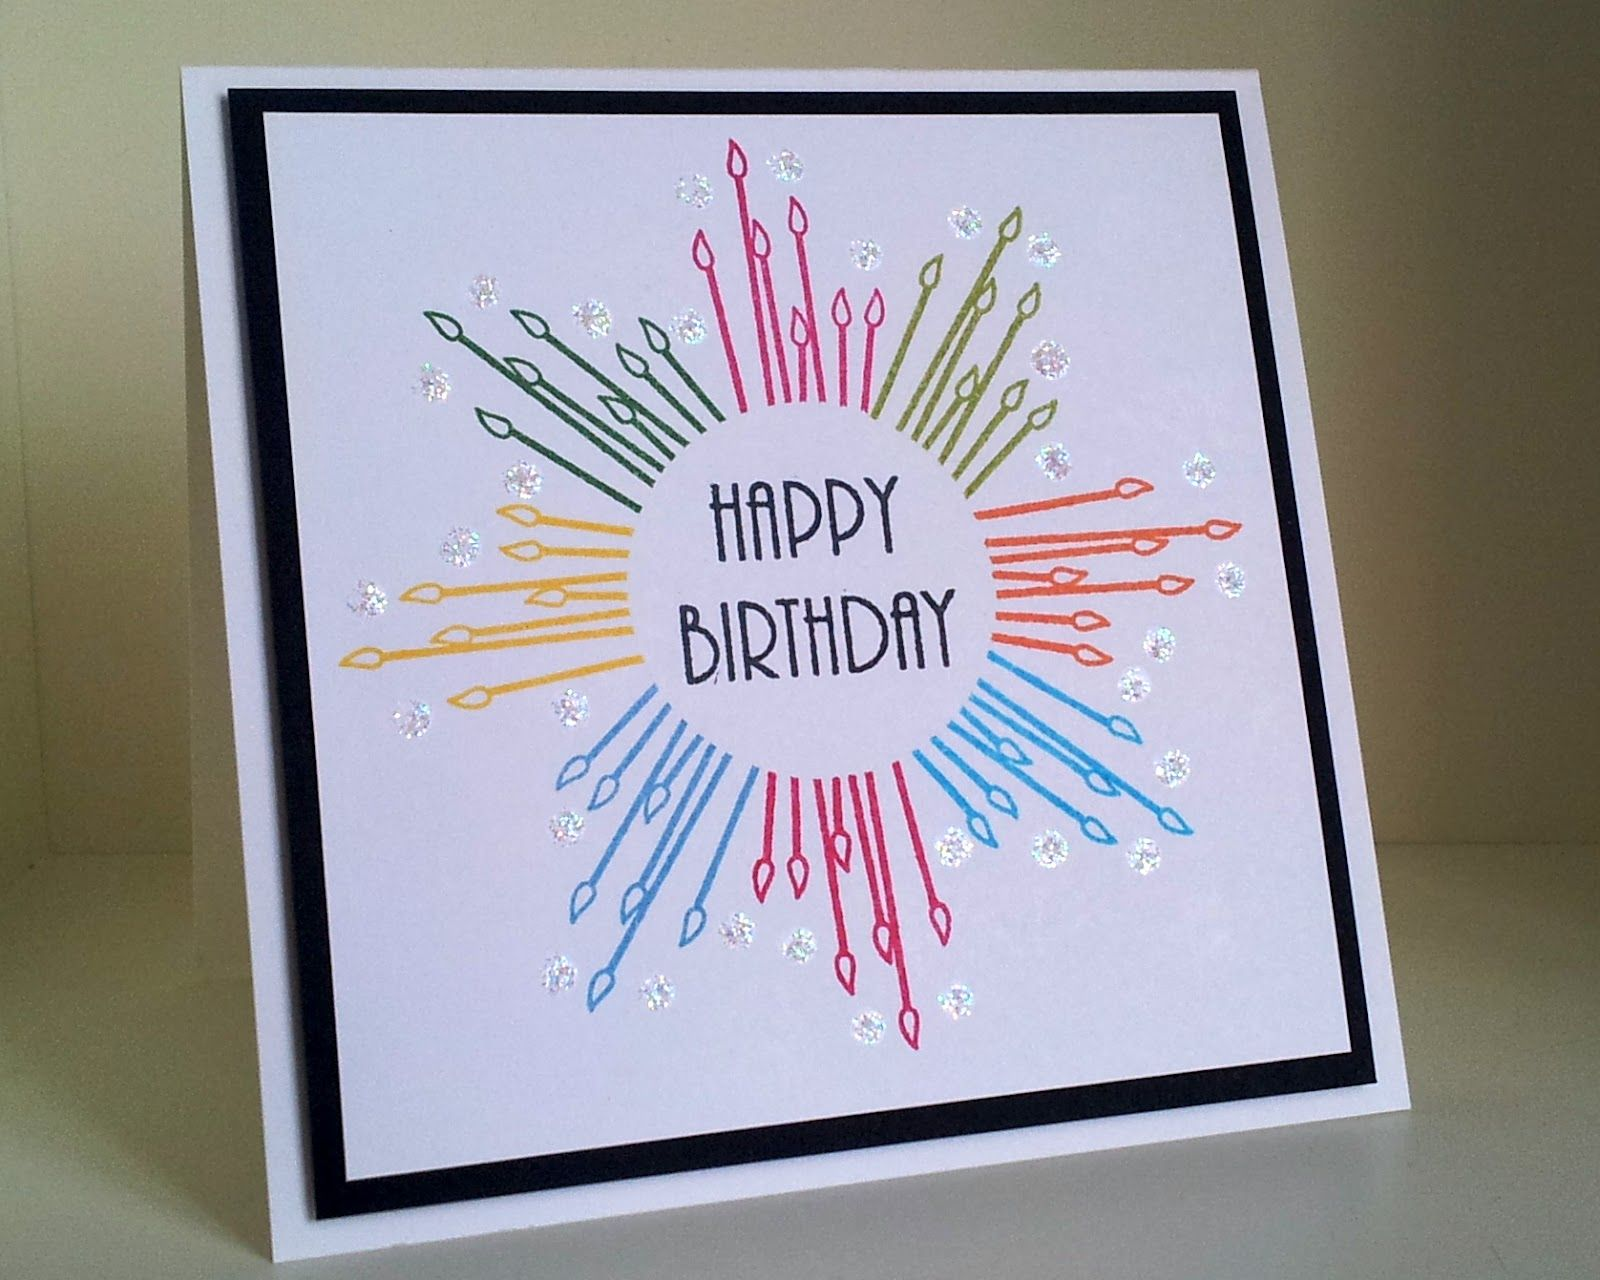 Httpsgooglesearchqawesome greeting cards greeting a birthday card is a sign of appreciation give a little pleasure with a homemade birthday card the the donee will show your feelings and affection bookmarktalkfo Images